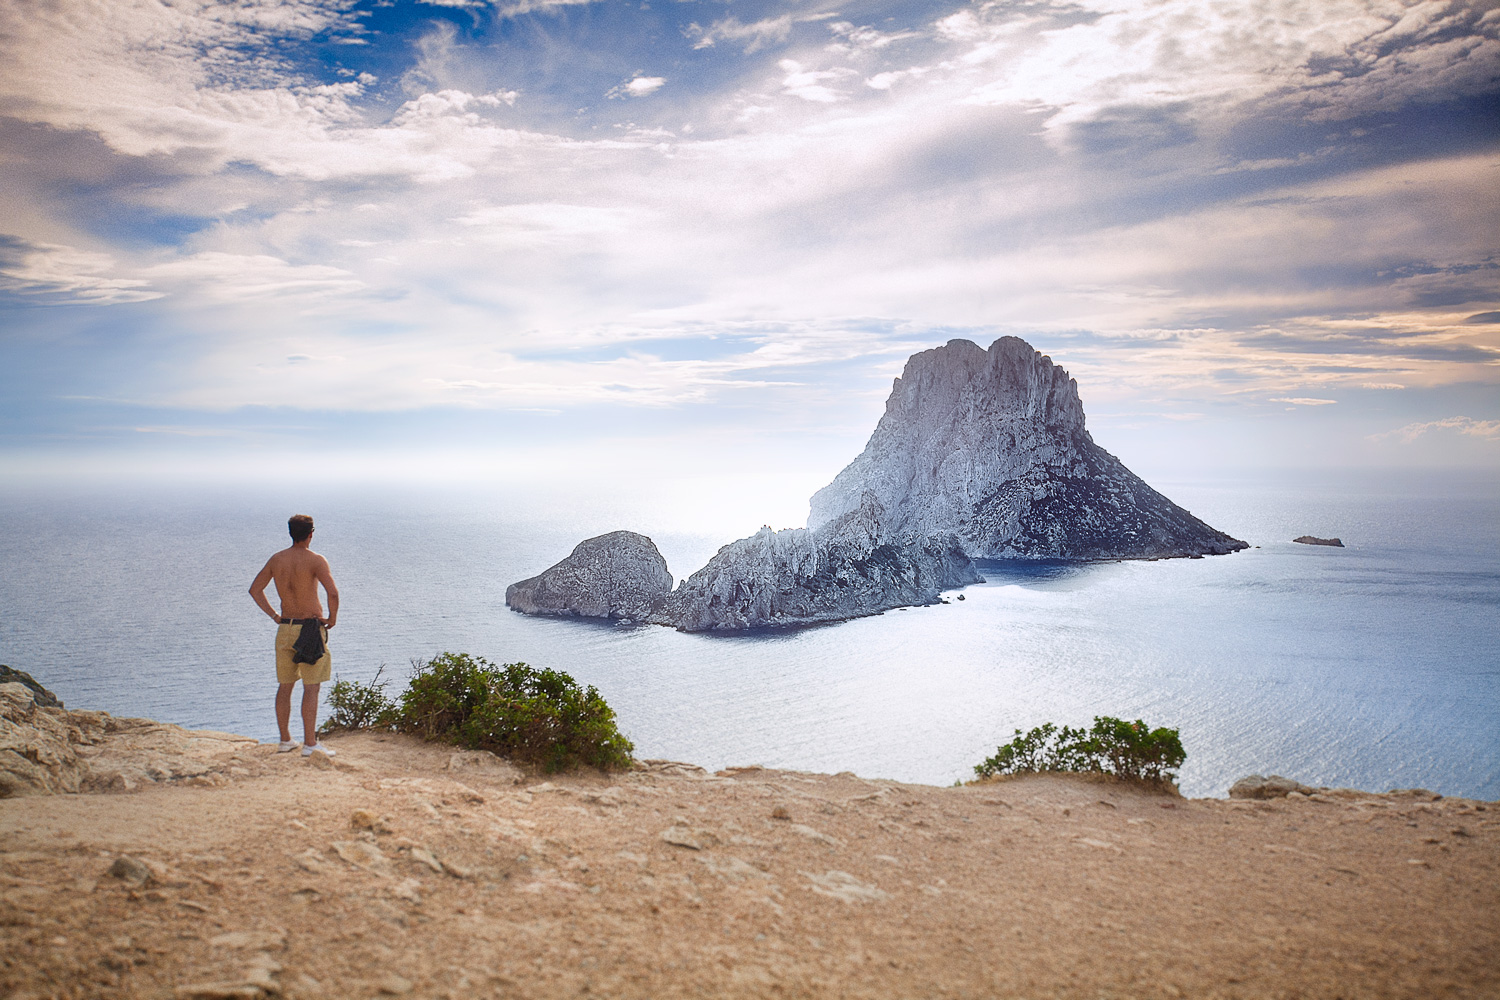 View-facing-Es-Vedra-Island,-Ibiza